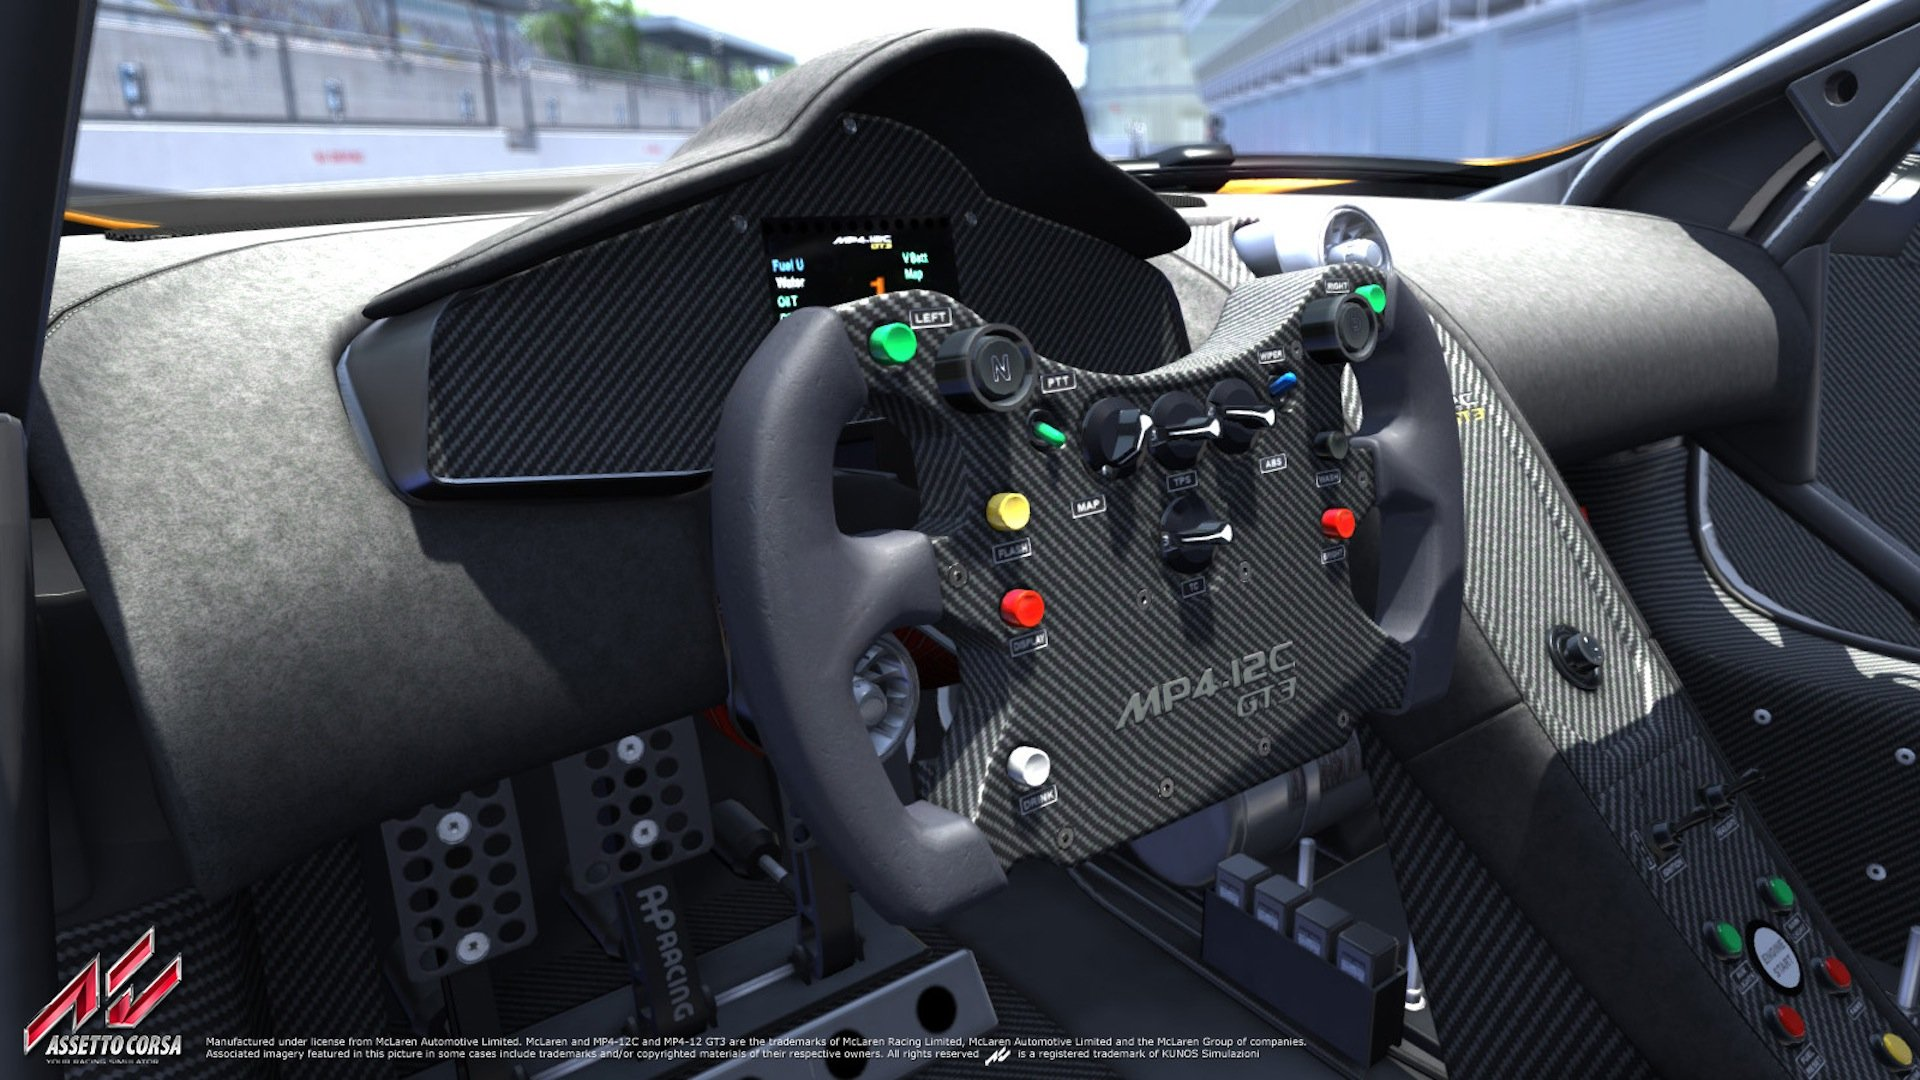 Assetto Corsa Update 0 6 5 Arrives Featuring Mclaren Mp4